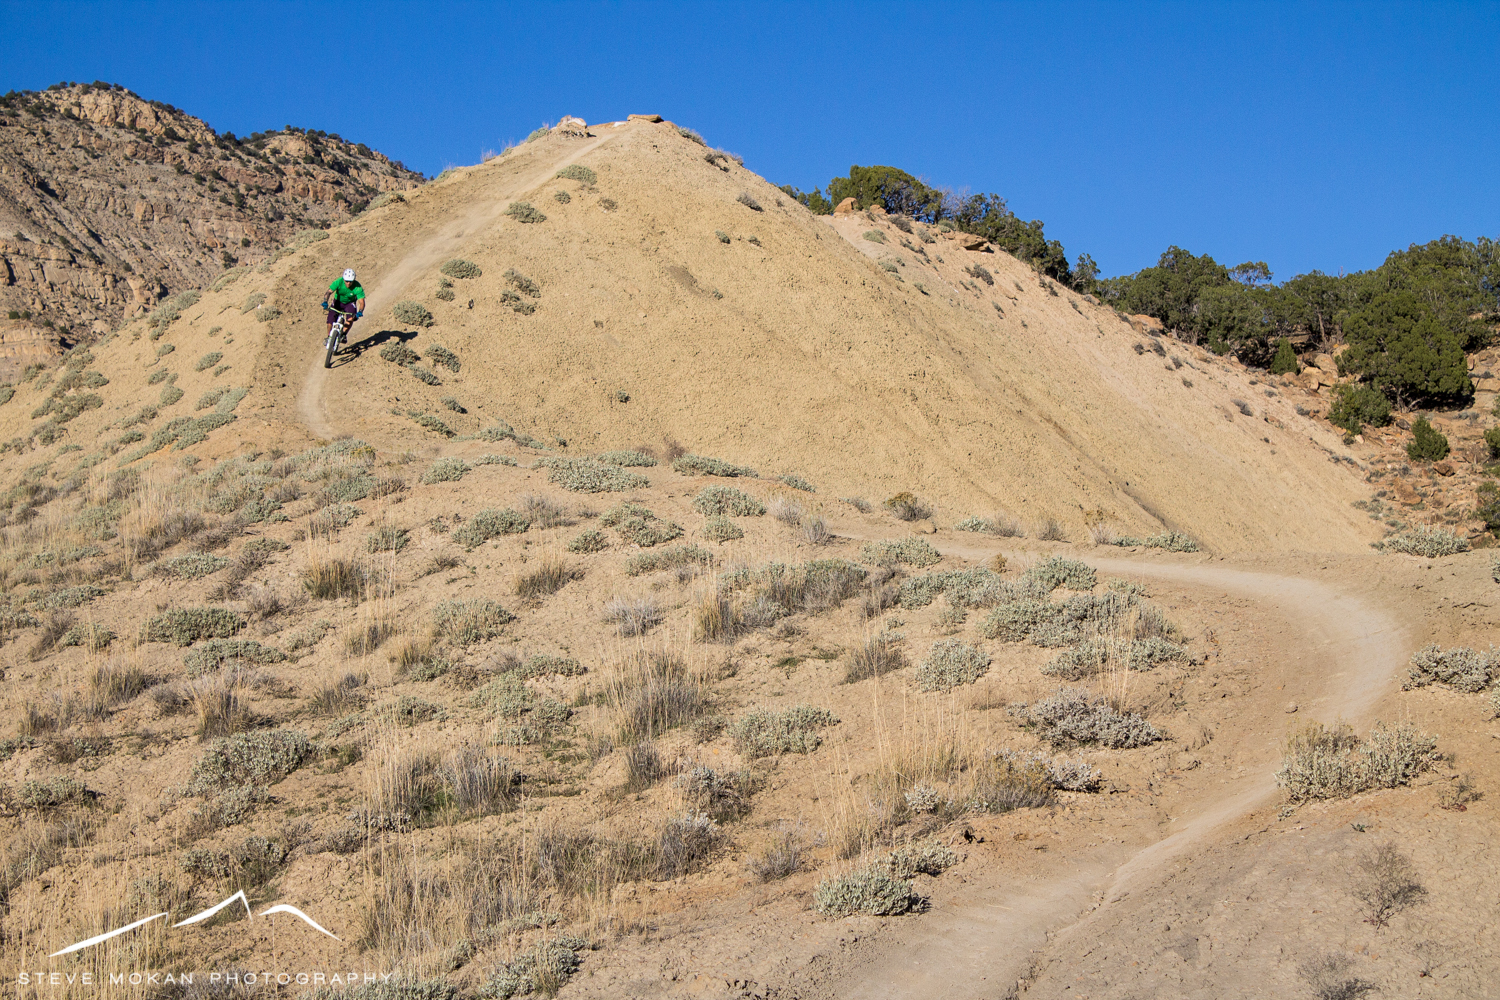 18 road fruita mountain biking chasing epic zippity